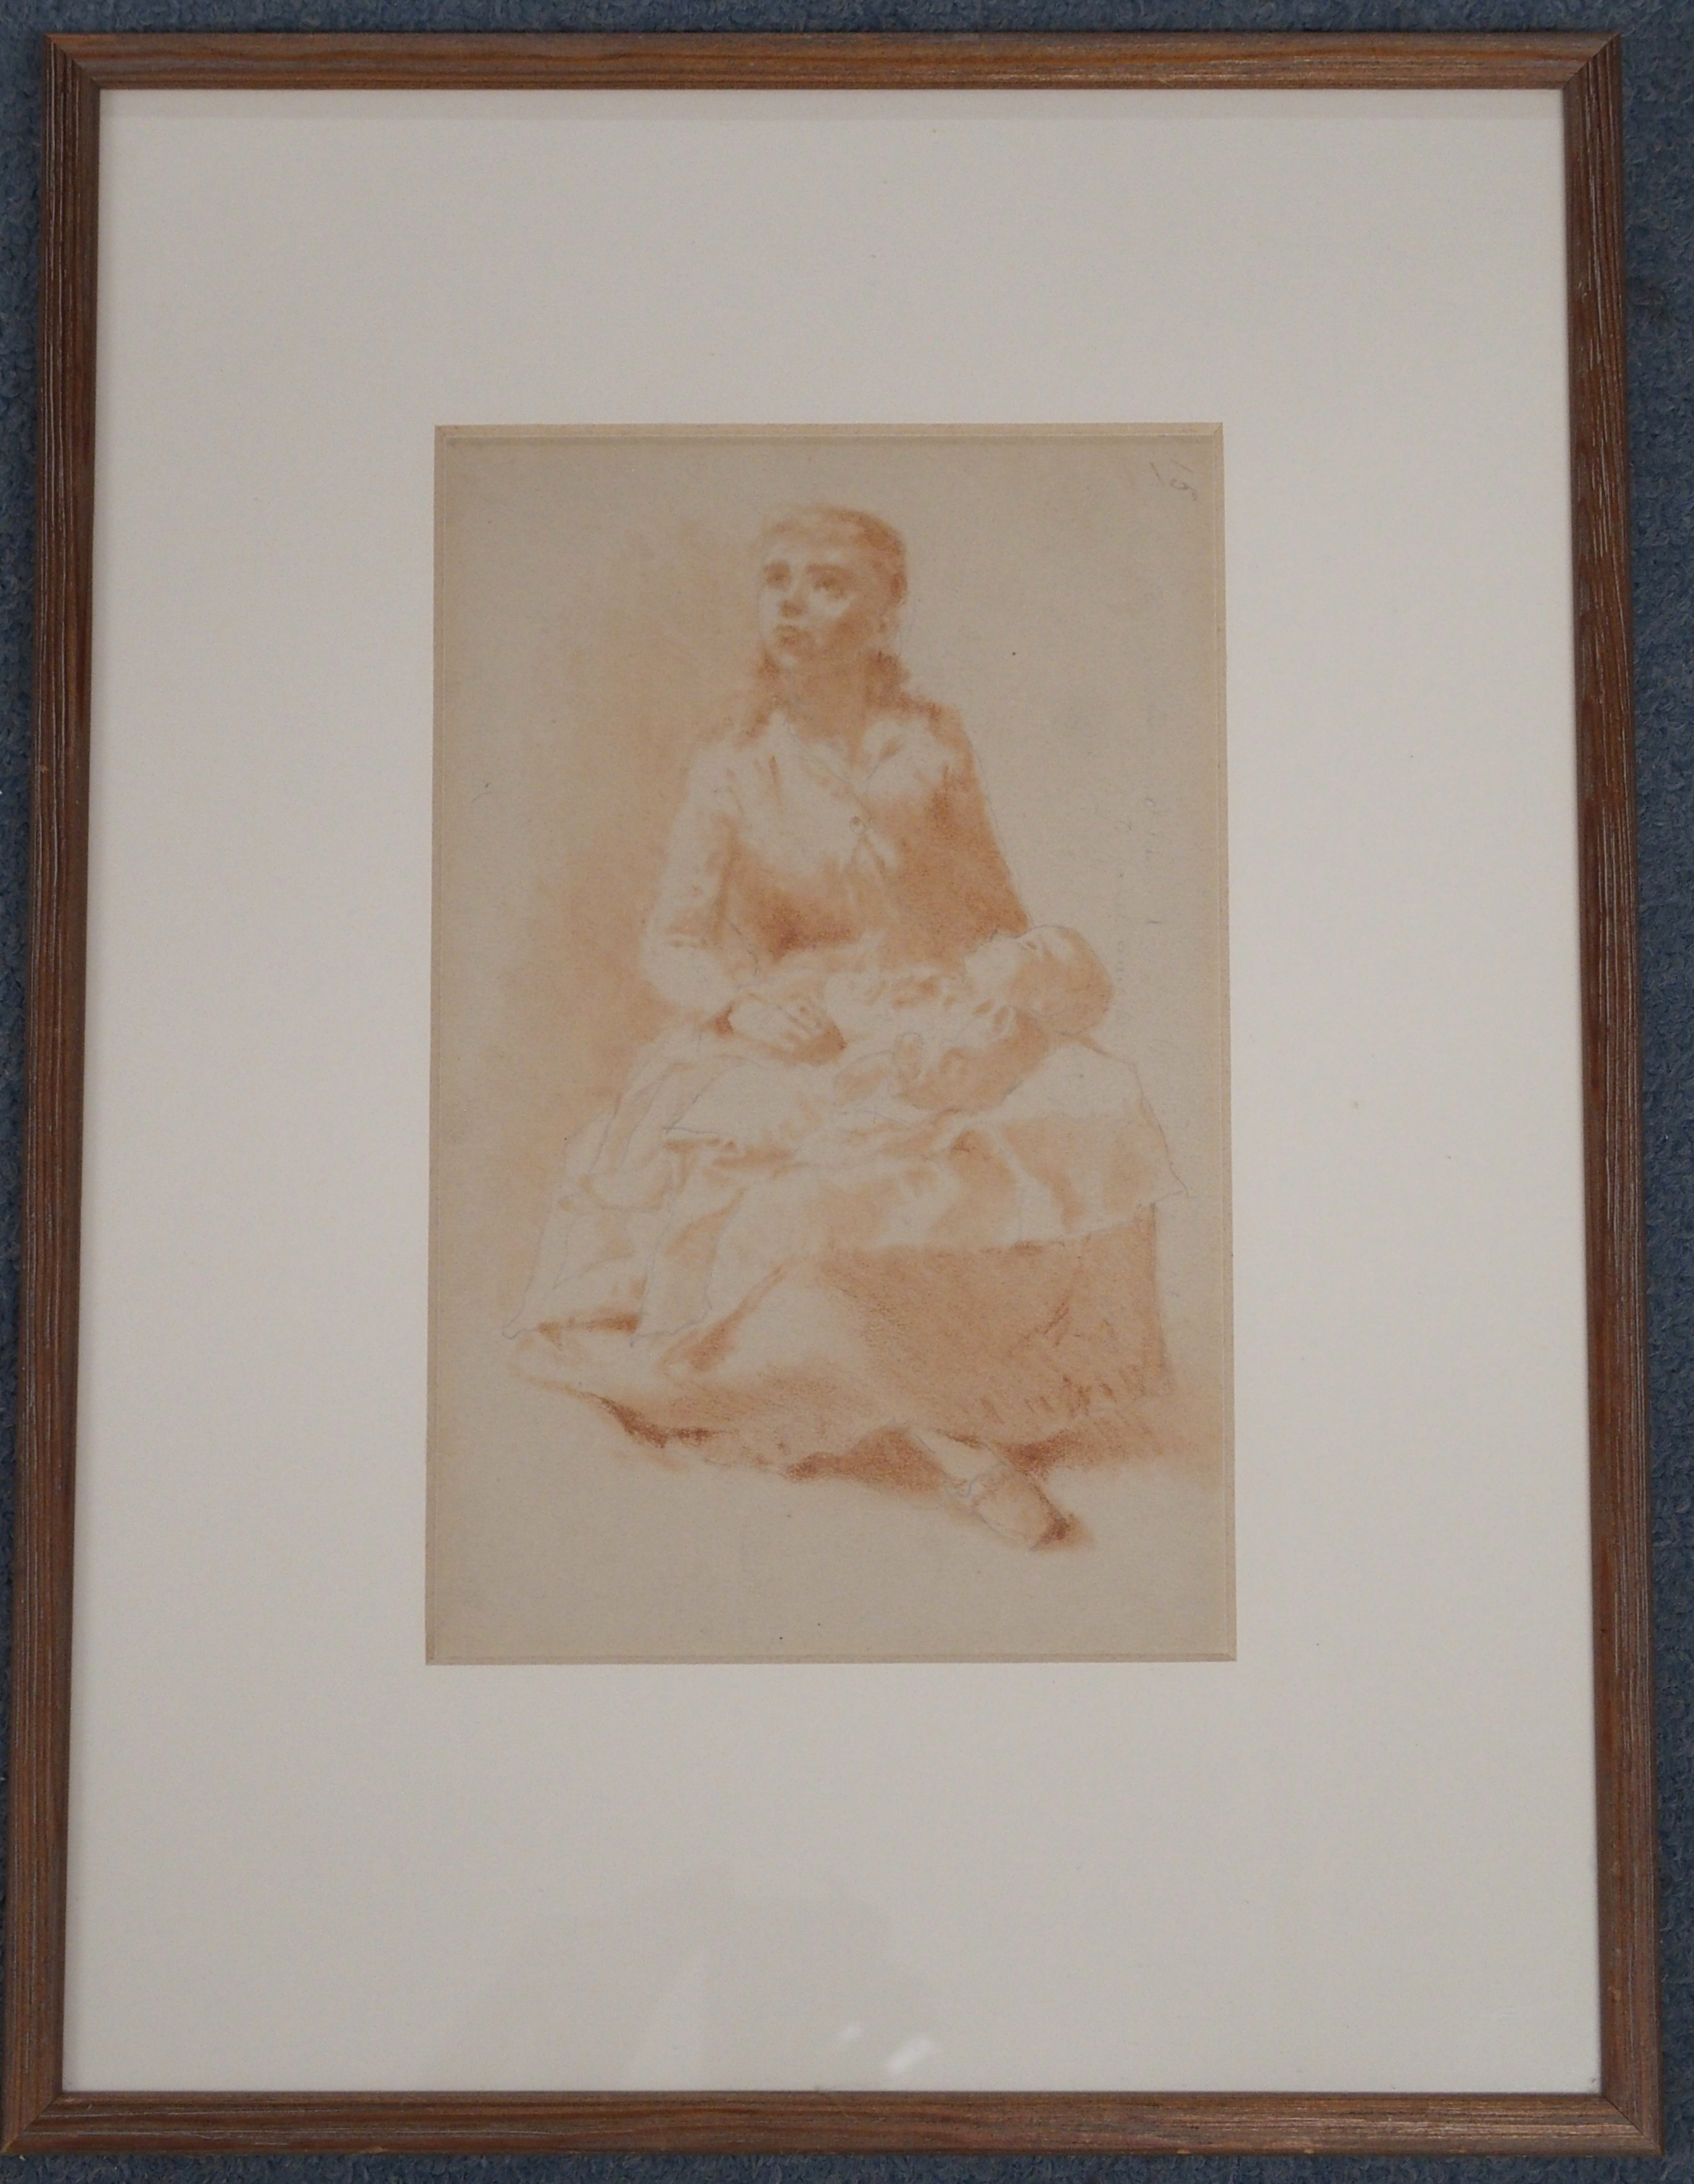 •A COLLECTION TO INCLUDE DRAWINGS, GREETINGS CARDS AND A BOOK ROBERT LEISHMAN 'Bob', inscribed, - Image 11 of 11